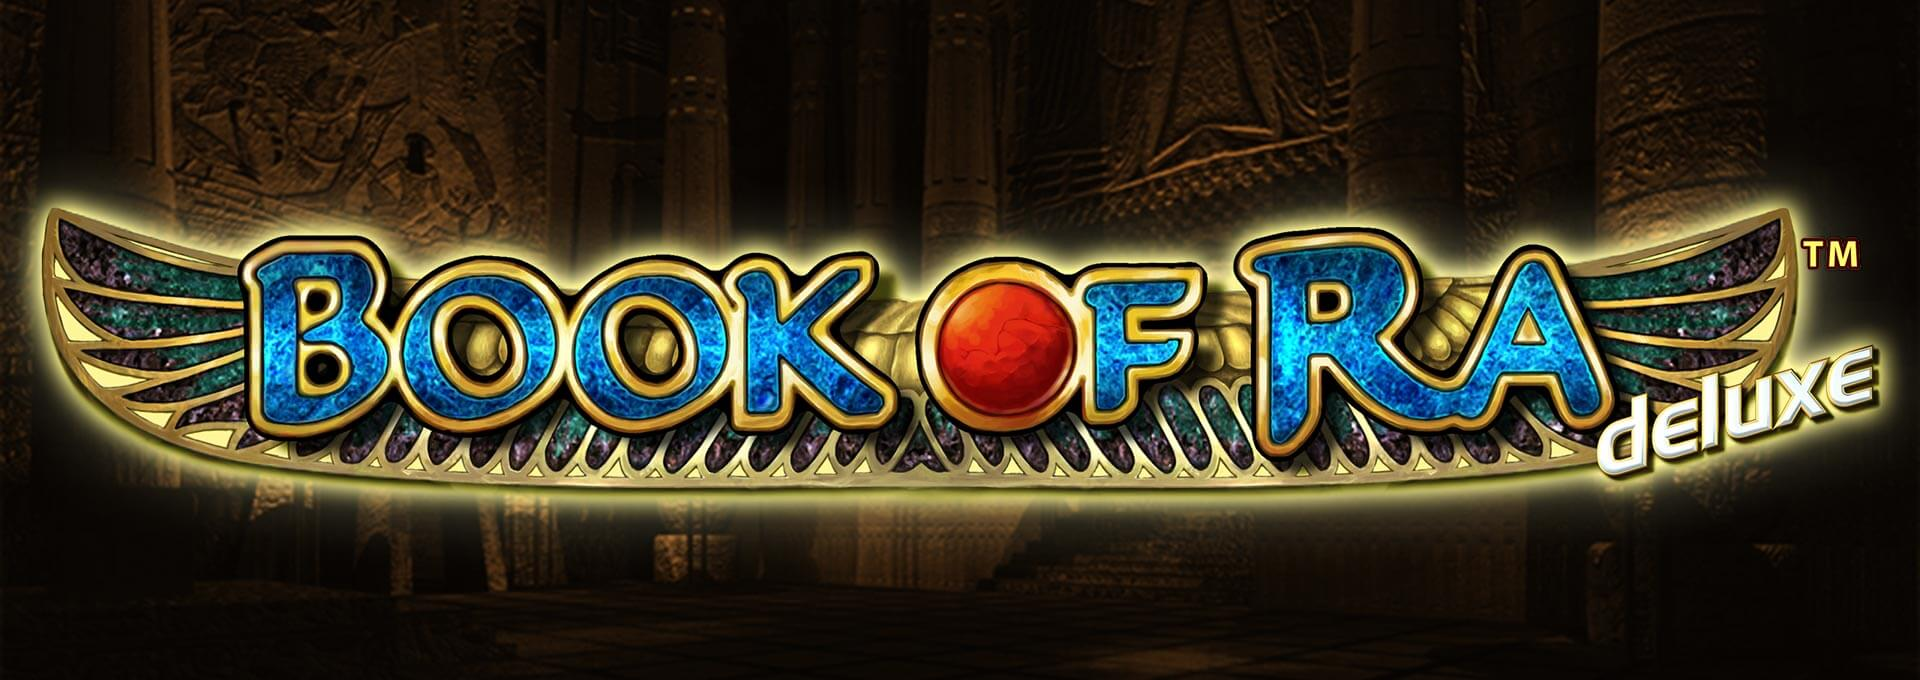 online casino gaming sites www.book of ra